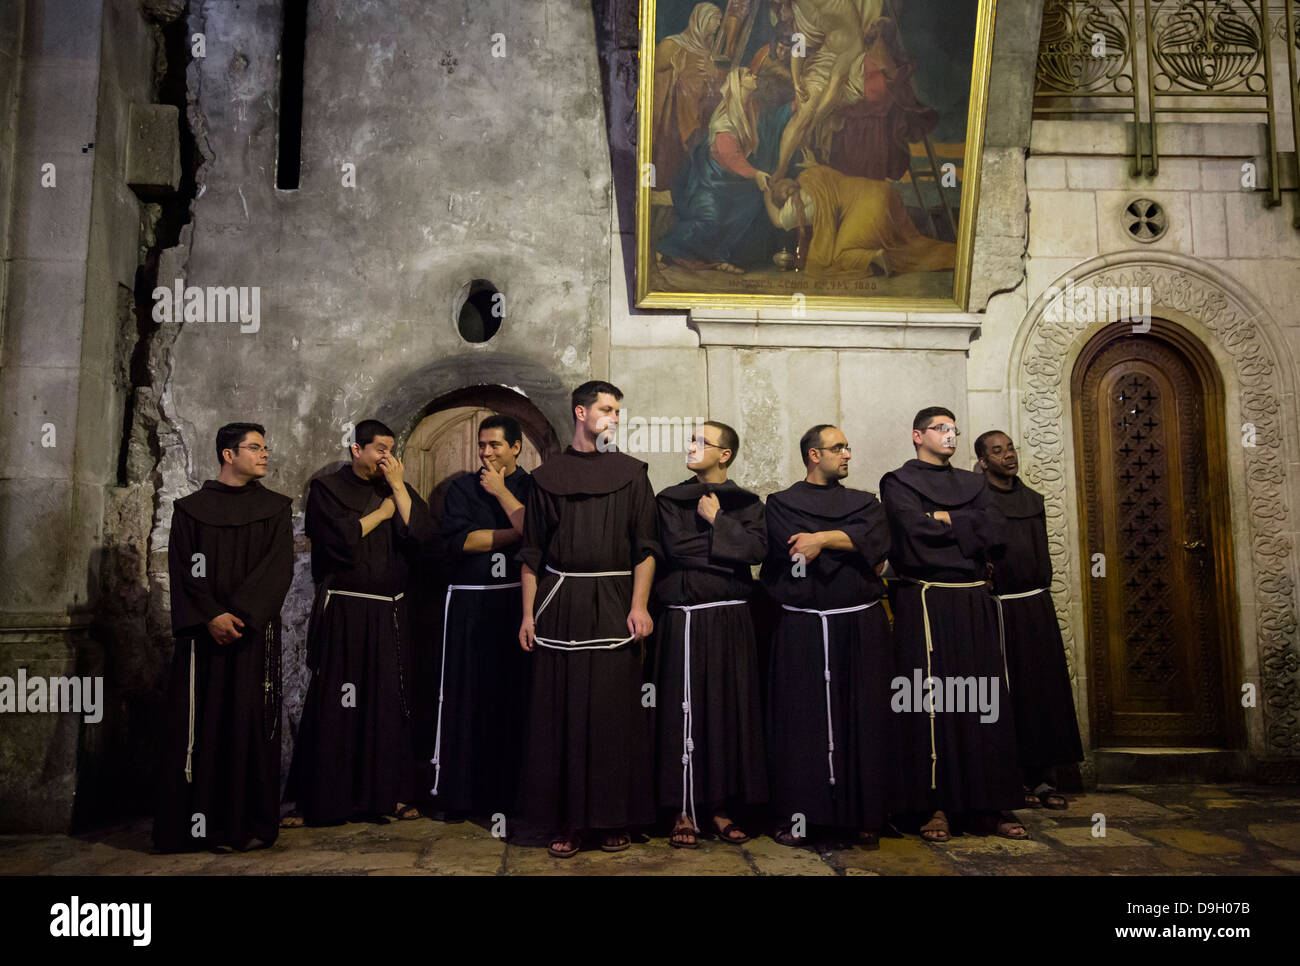 Franciscan Monks At The Church Of The Holy Sepulchre In